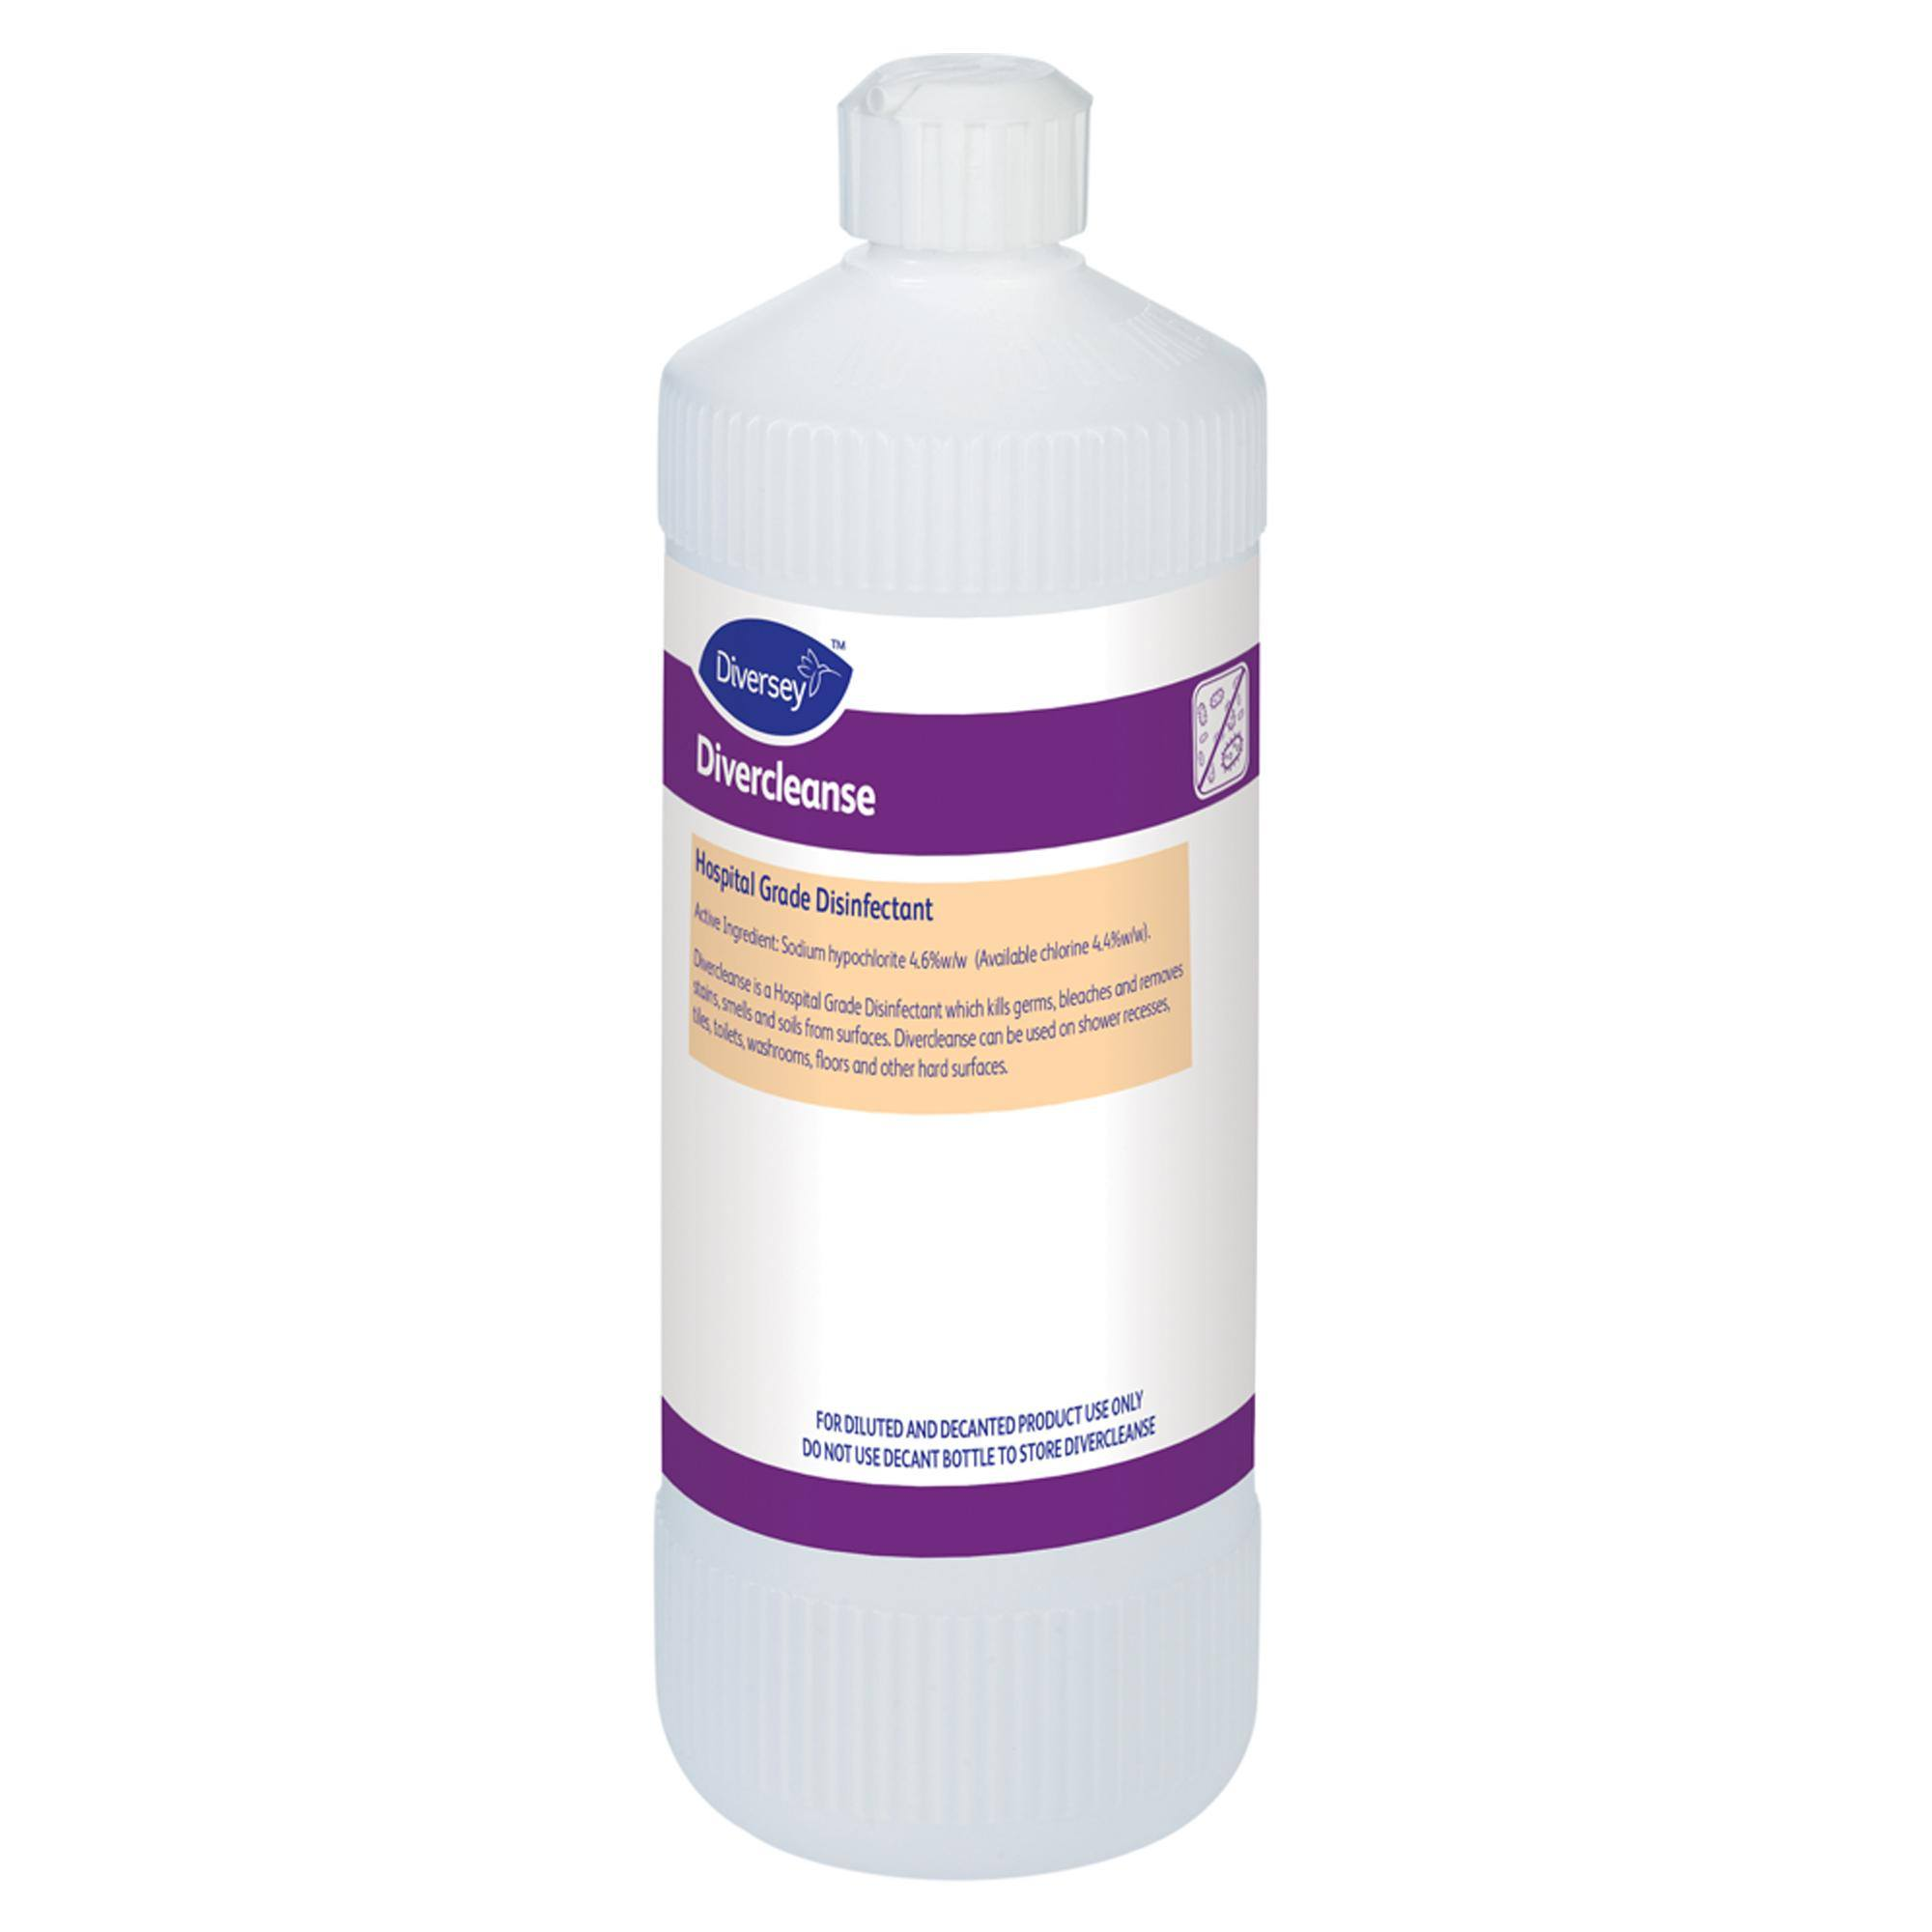 D5720040%20Divercleanse%20_%20750ml%20DECANT%202000x2000px.jpg